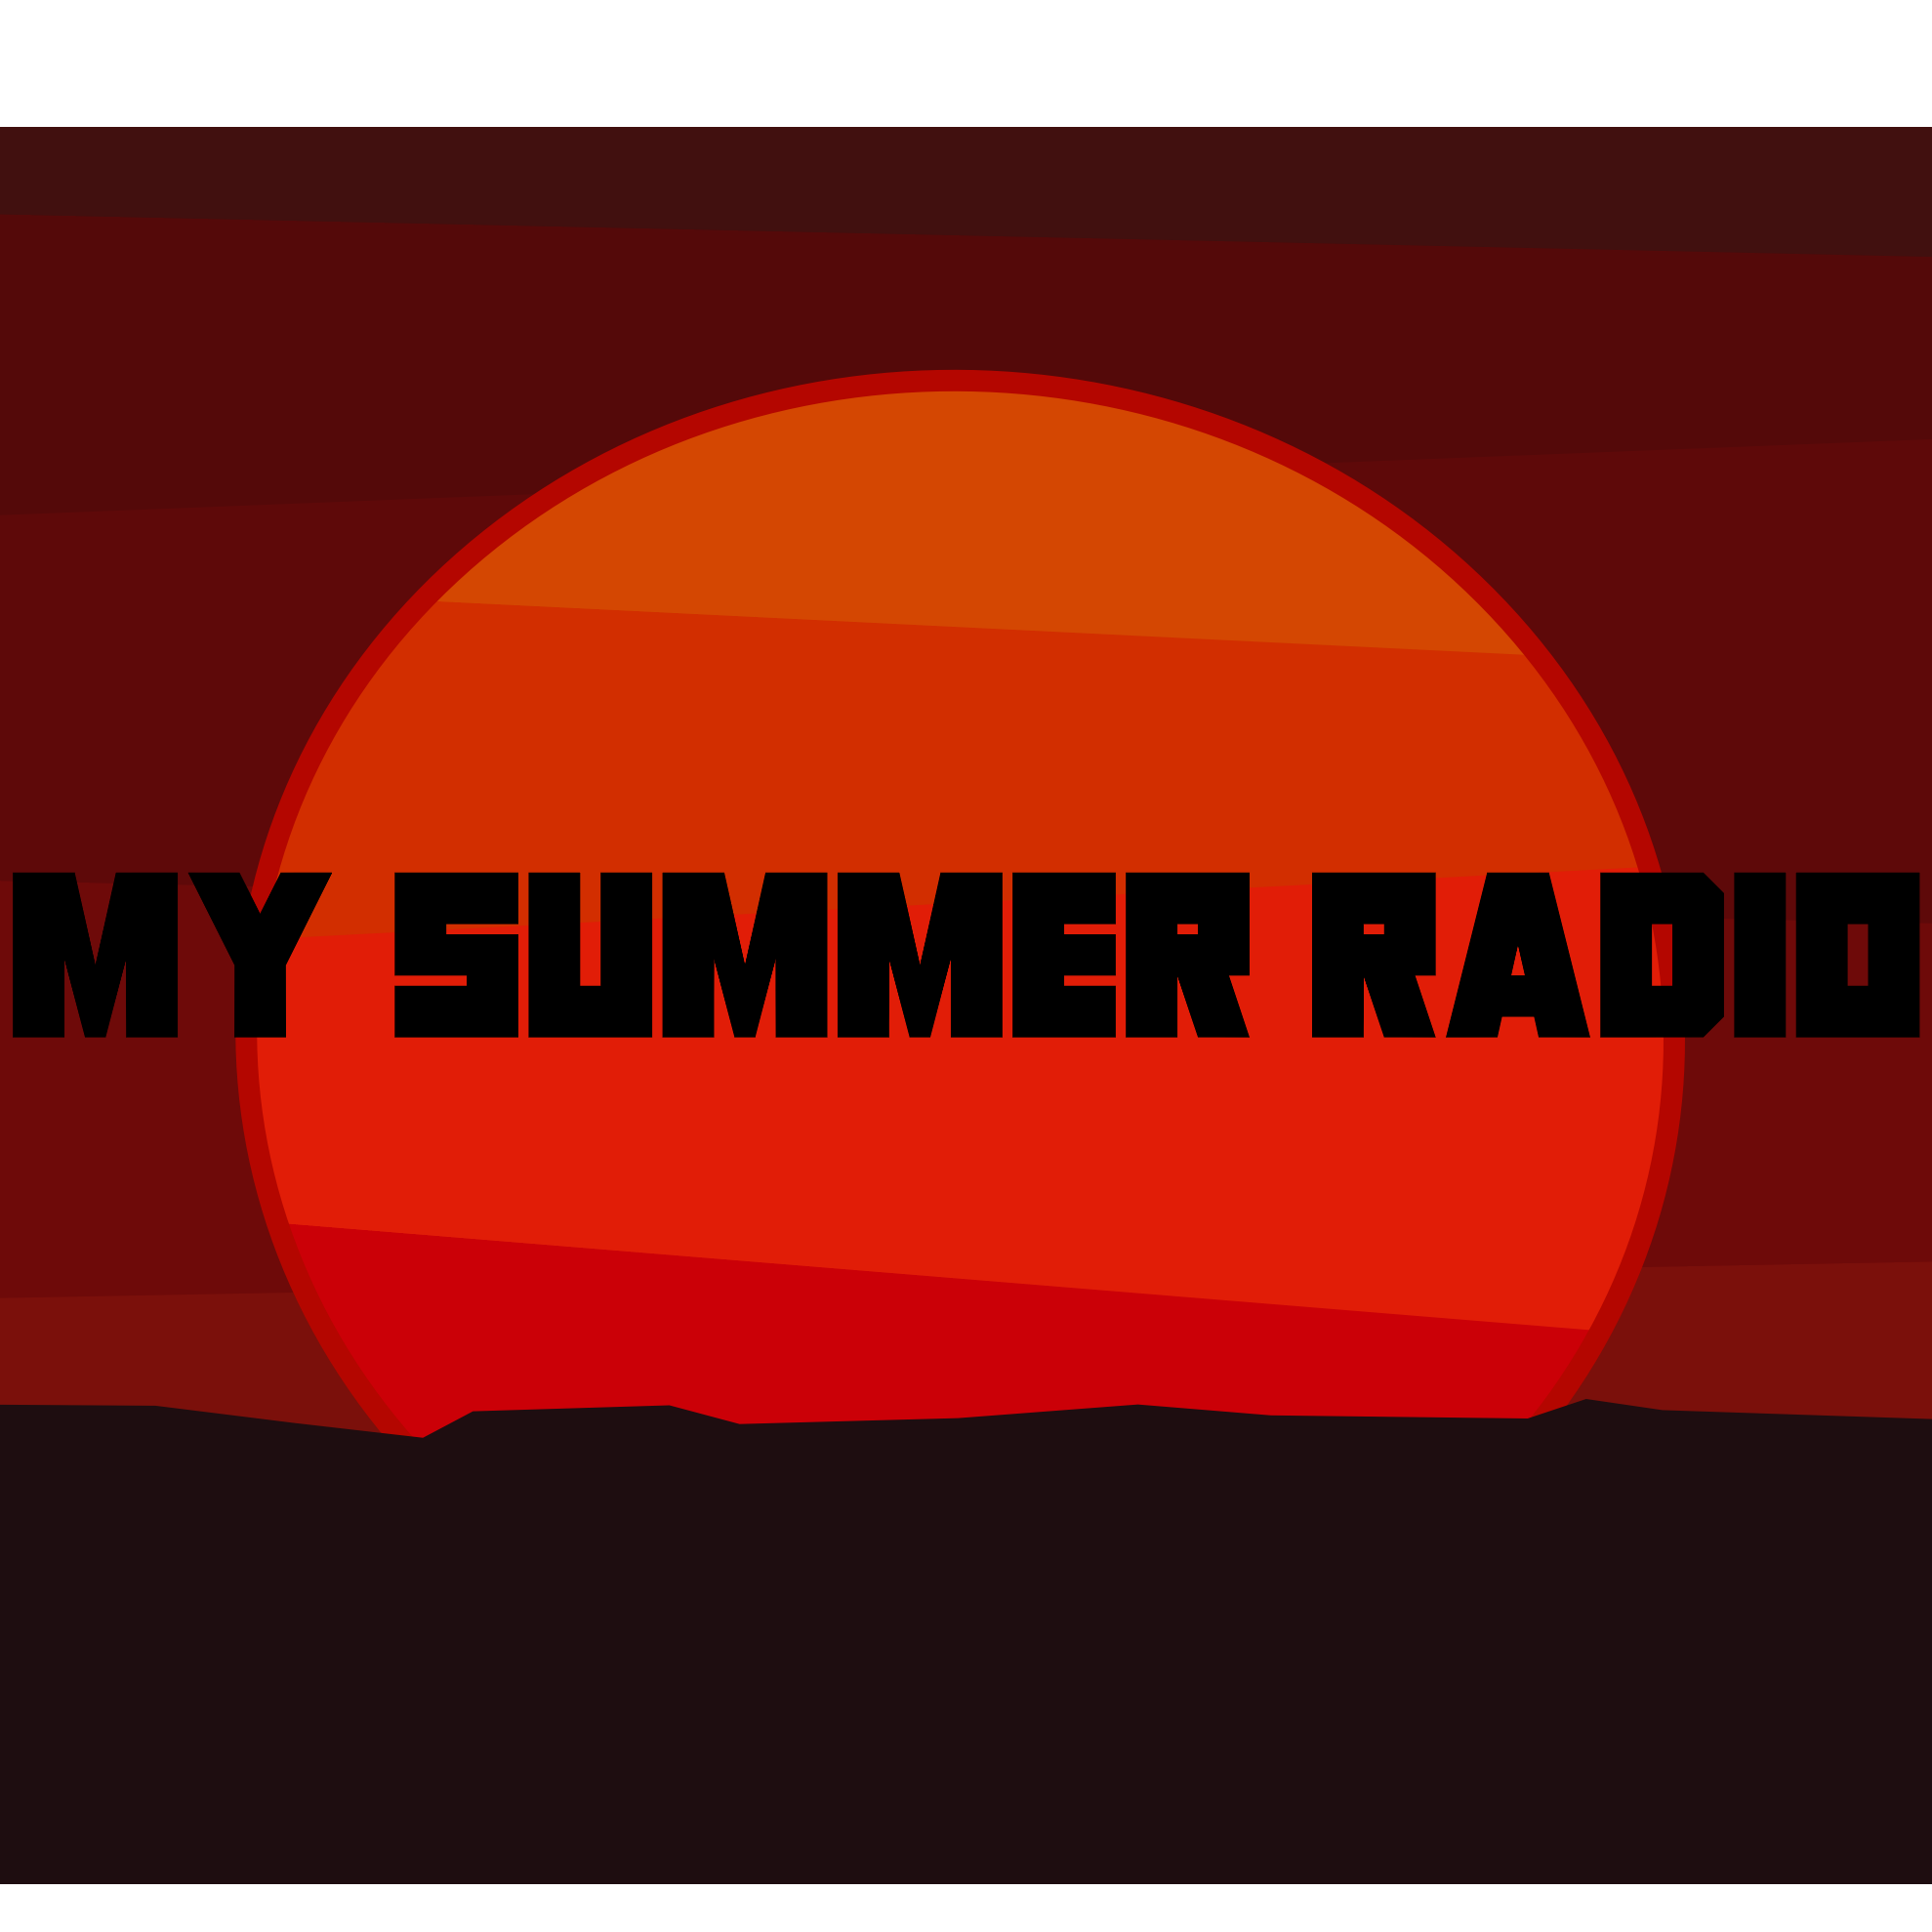 My Summer Radio